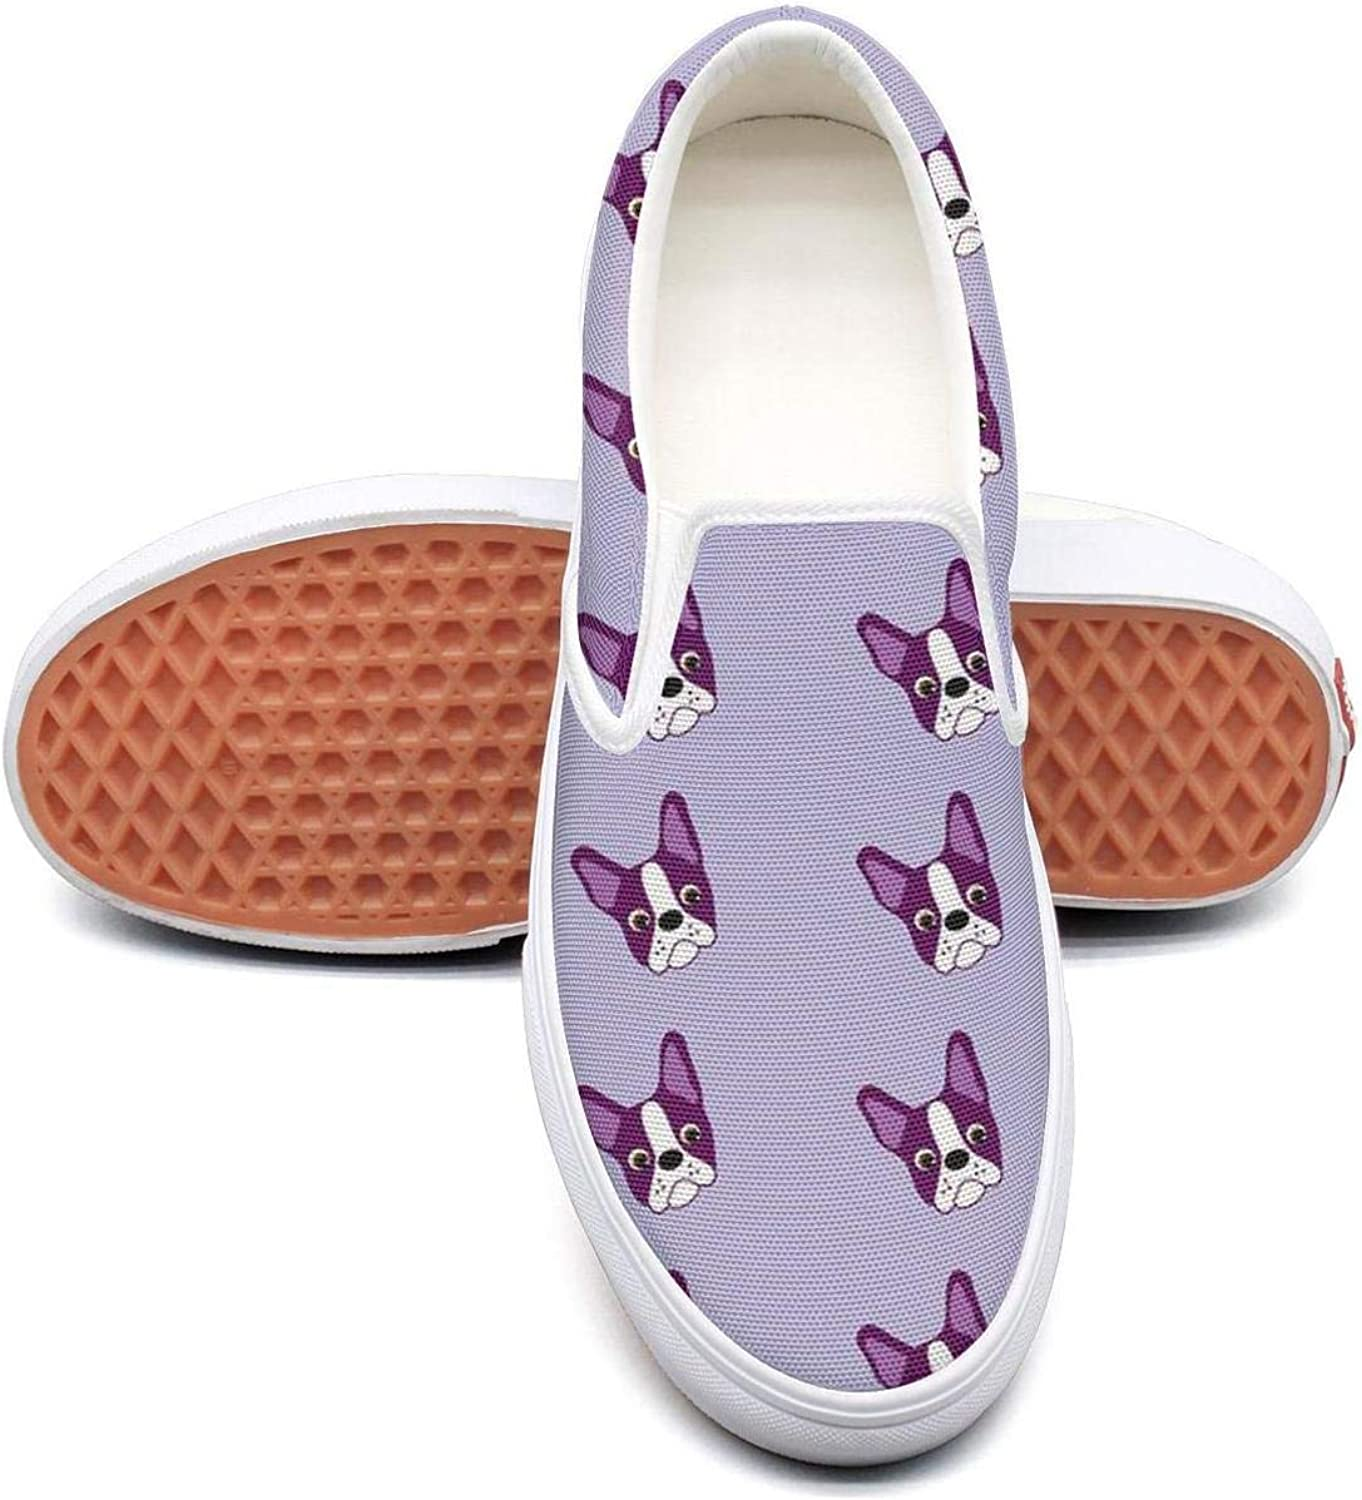 Refyds-es Purple Boston Terrier Puppy Womens Fashion Slip on Low Top Lightweight Canvas Tennis shoes